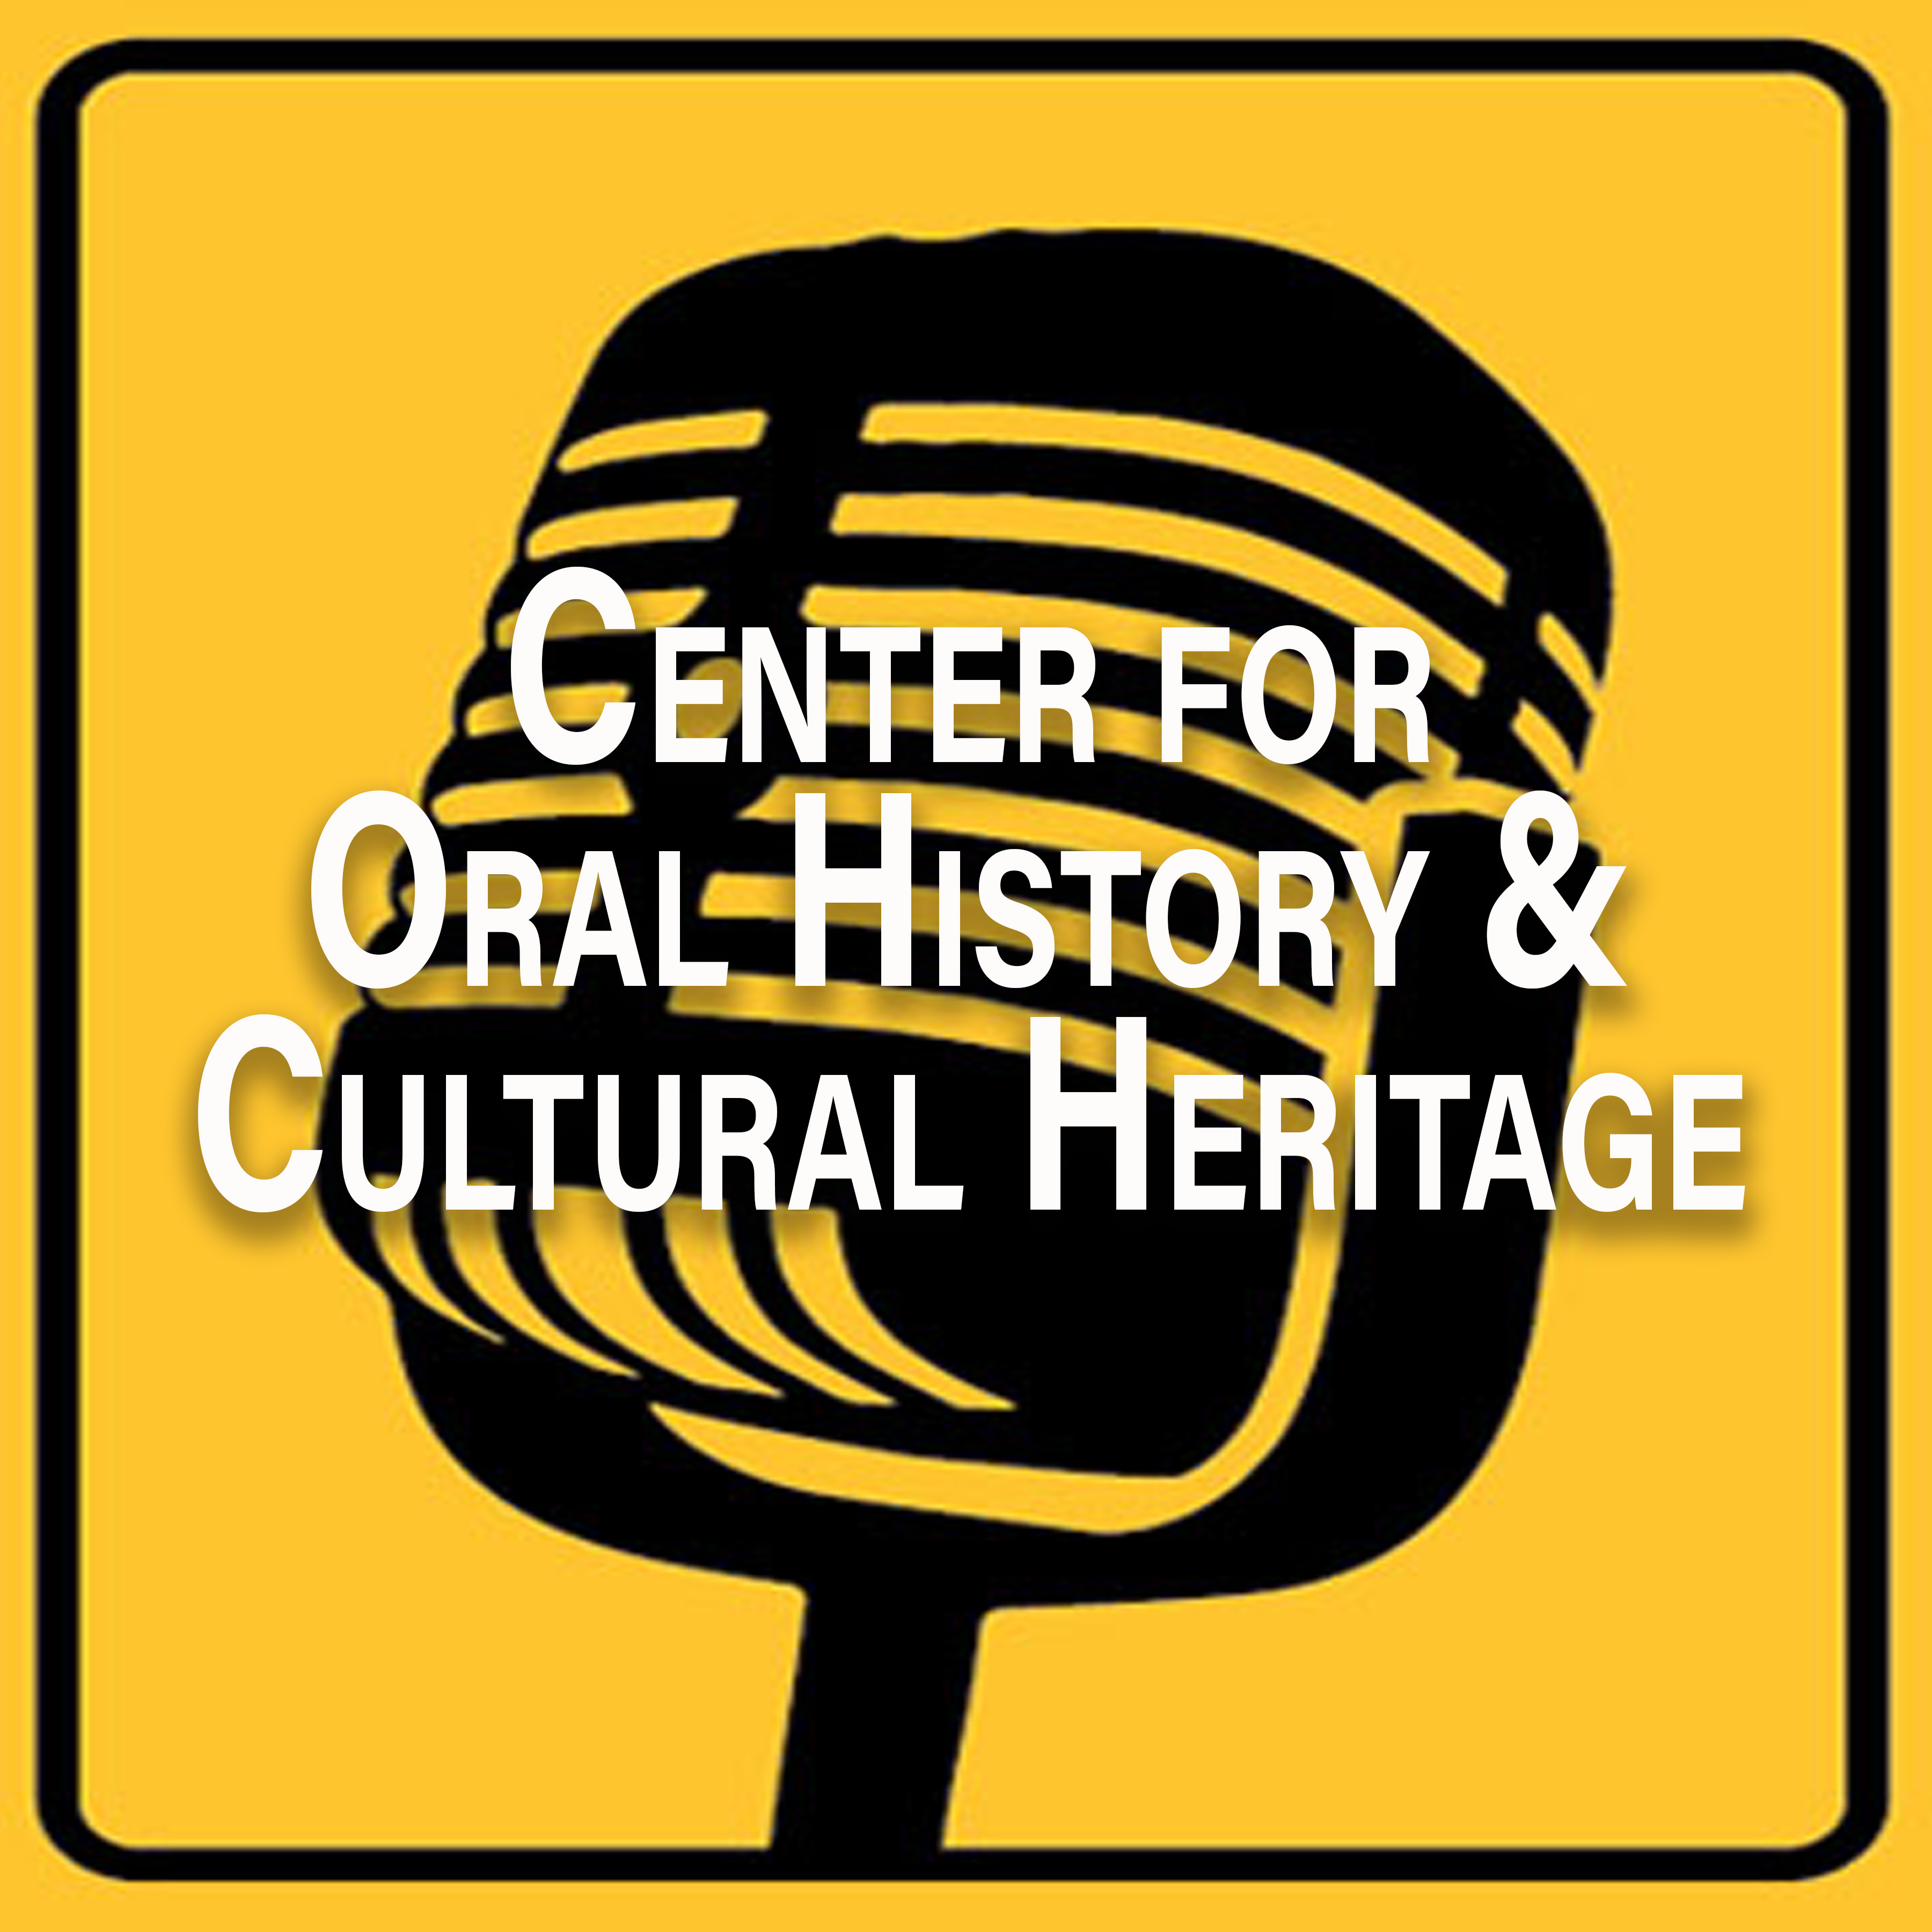 Center for Oral History and Cultural Heritage